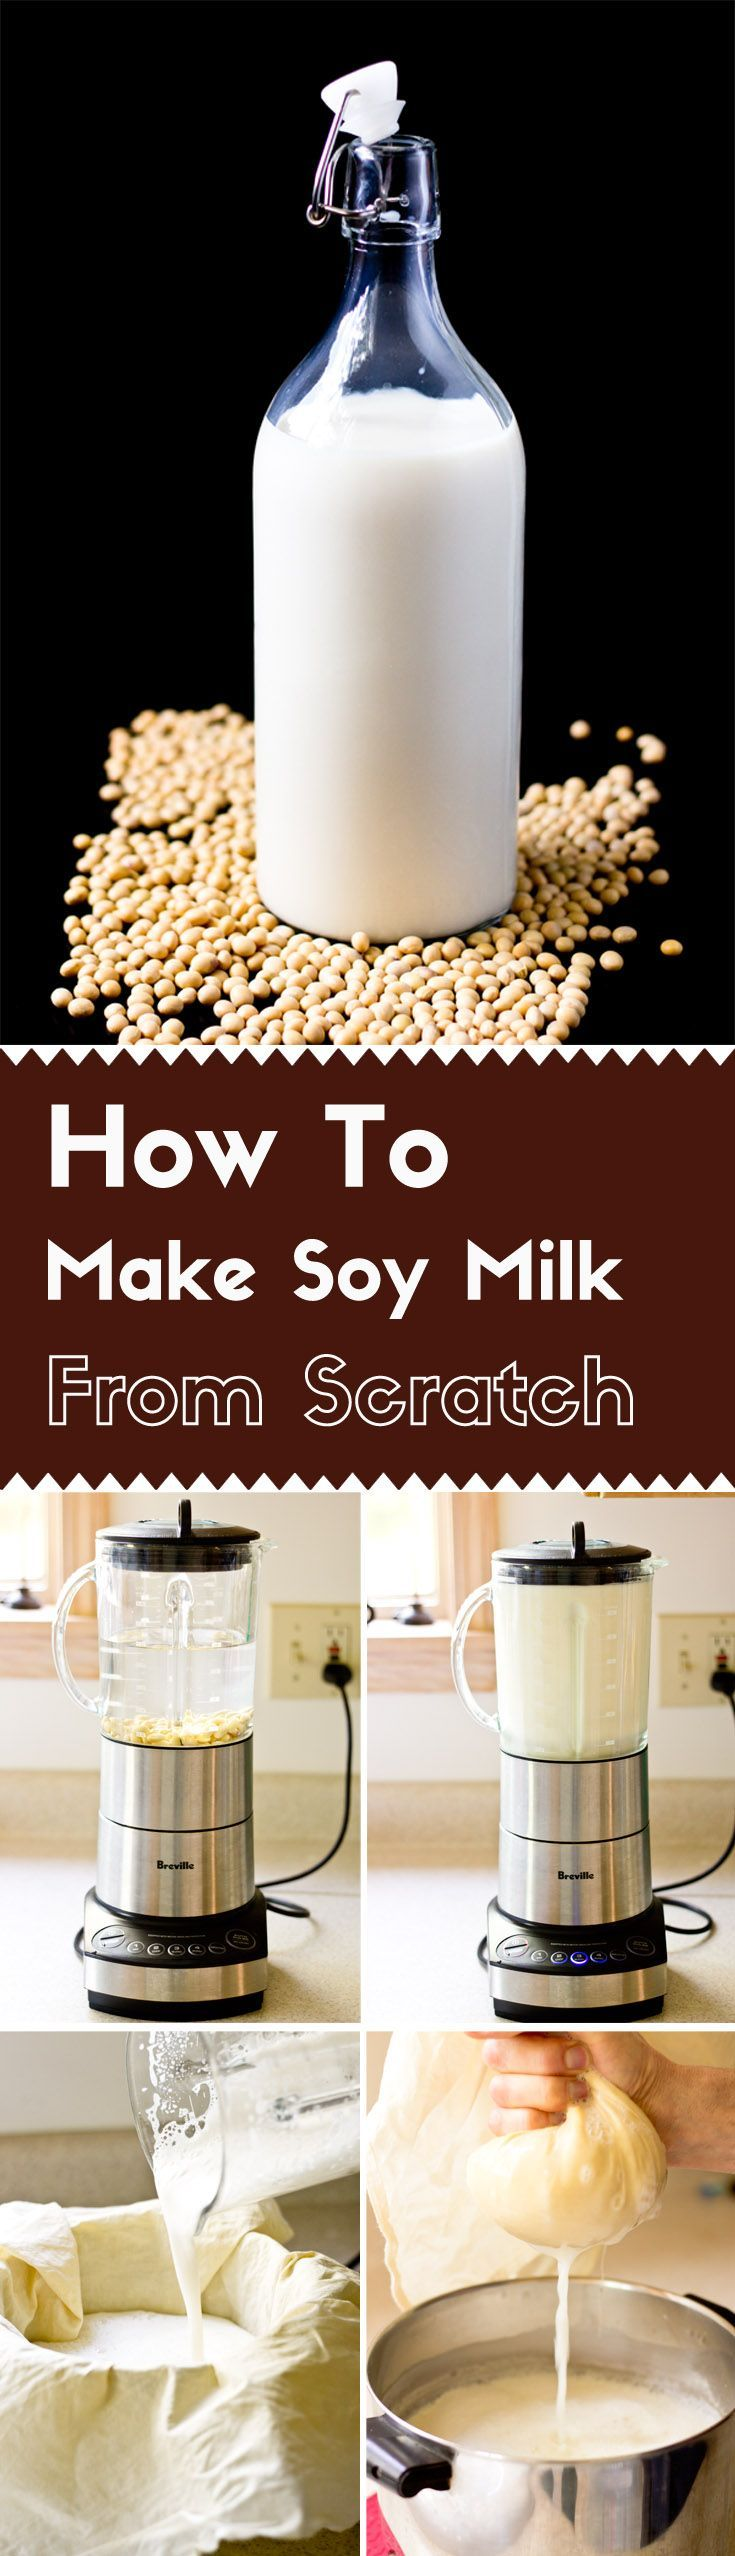 A guide of making soy milk at home! via /lightorangebean/